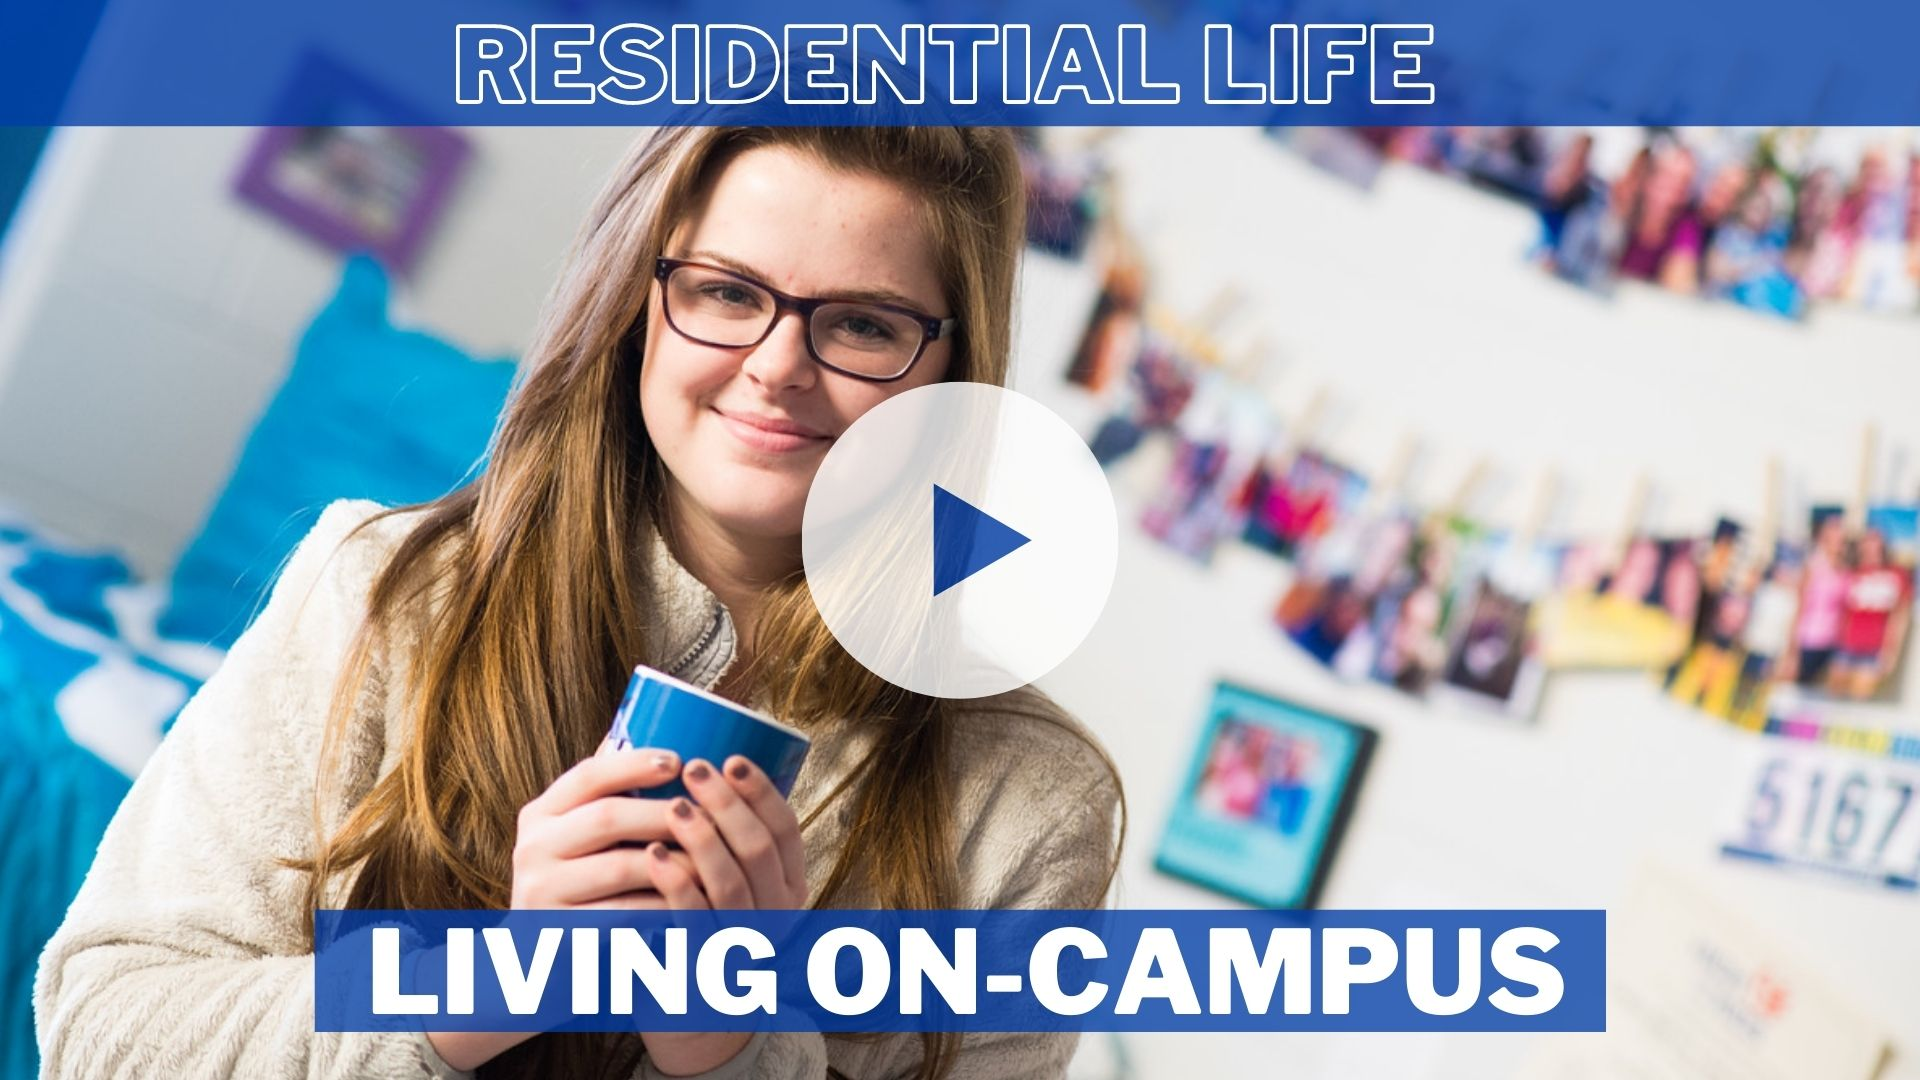 Living On-Campus (Residential Life)